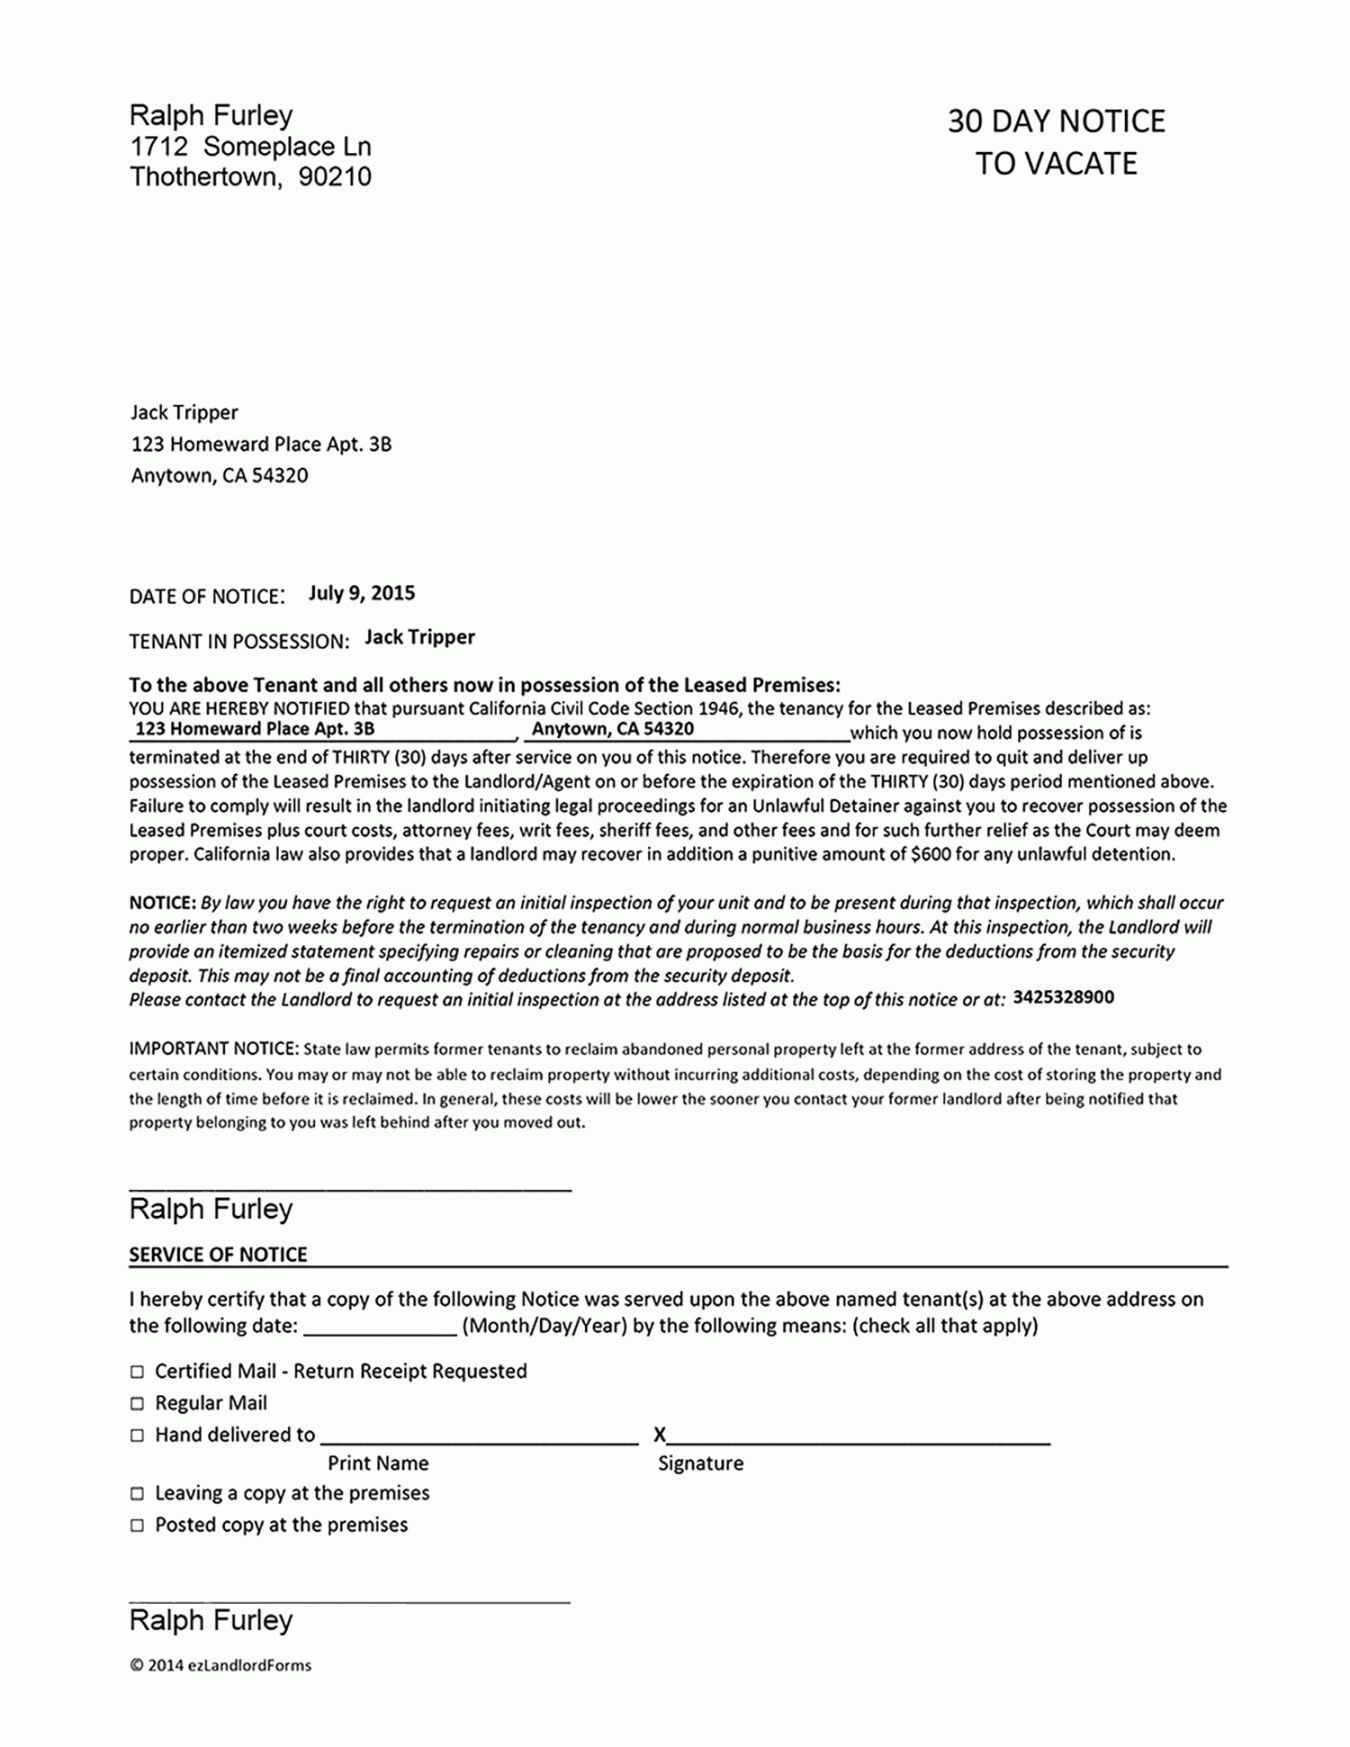 Browse Our Sample of 30 Day Notice To Vacate Template